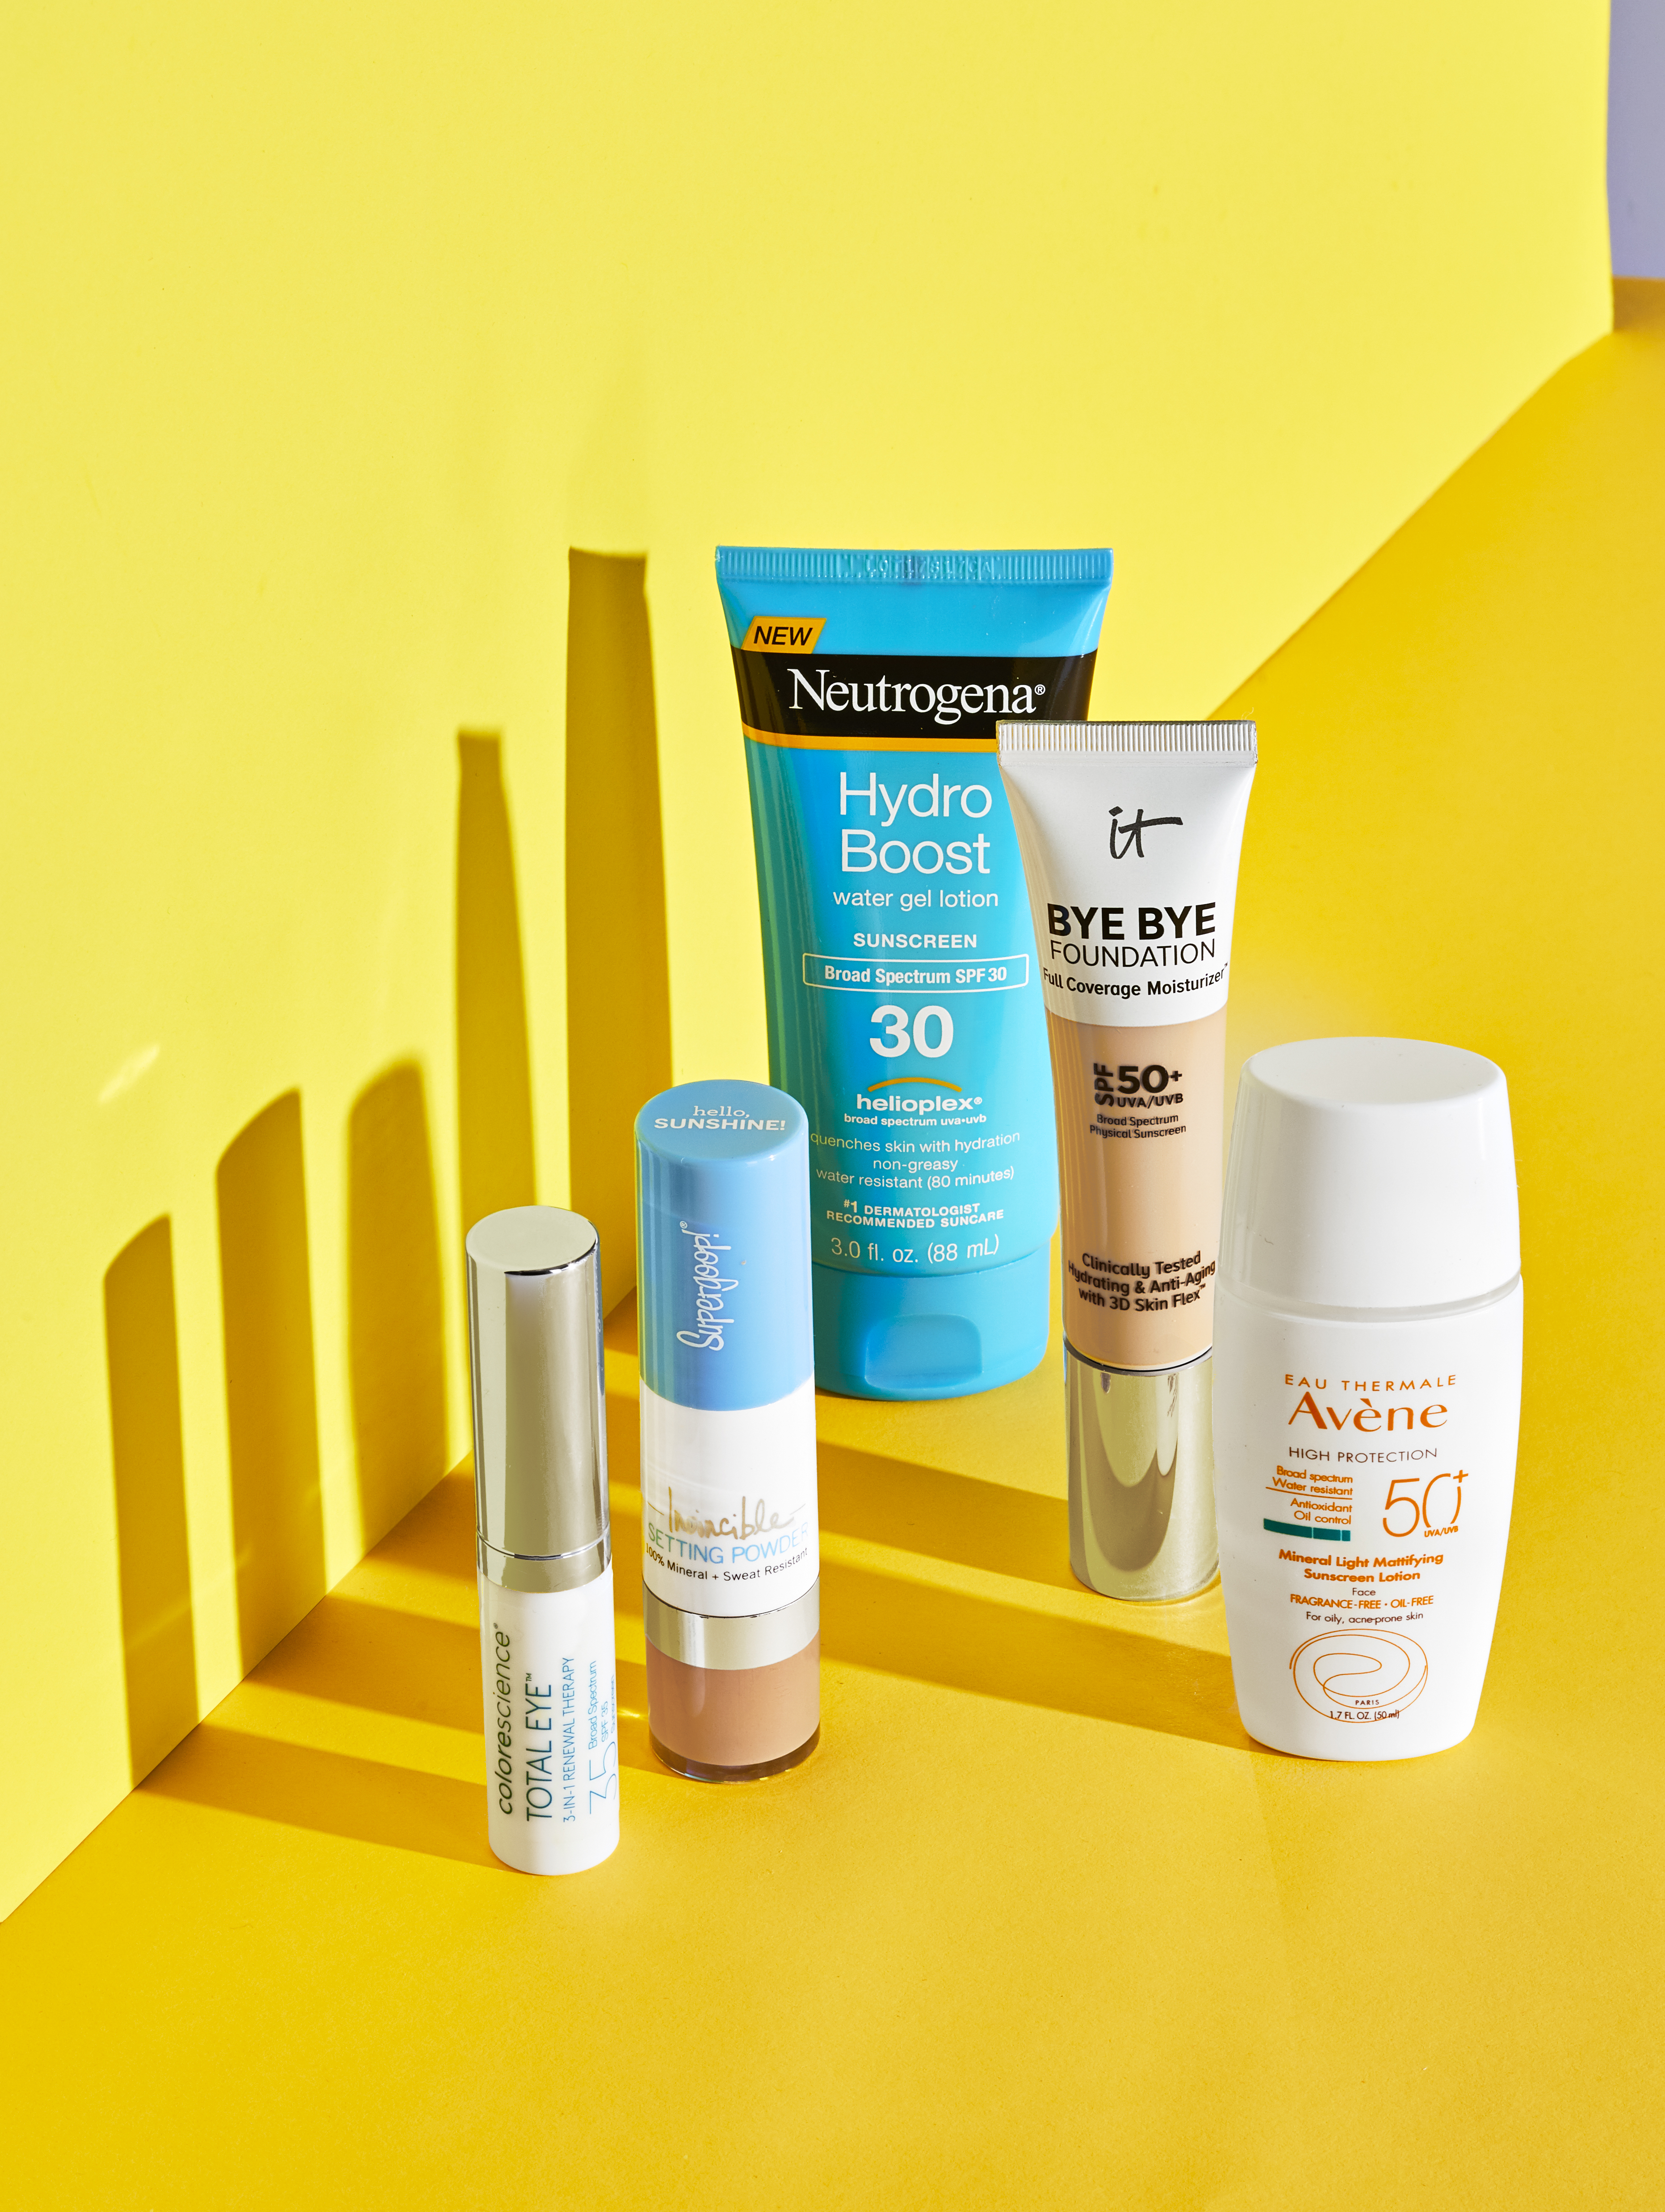 Sunscreen and skin care products